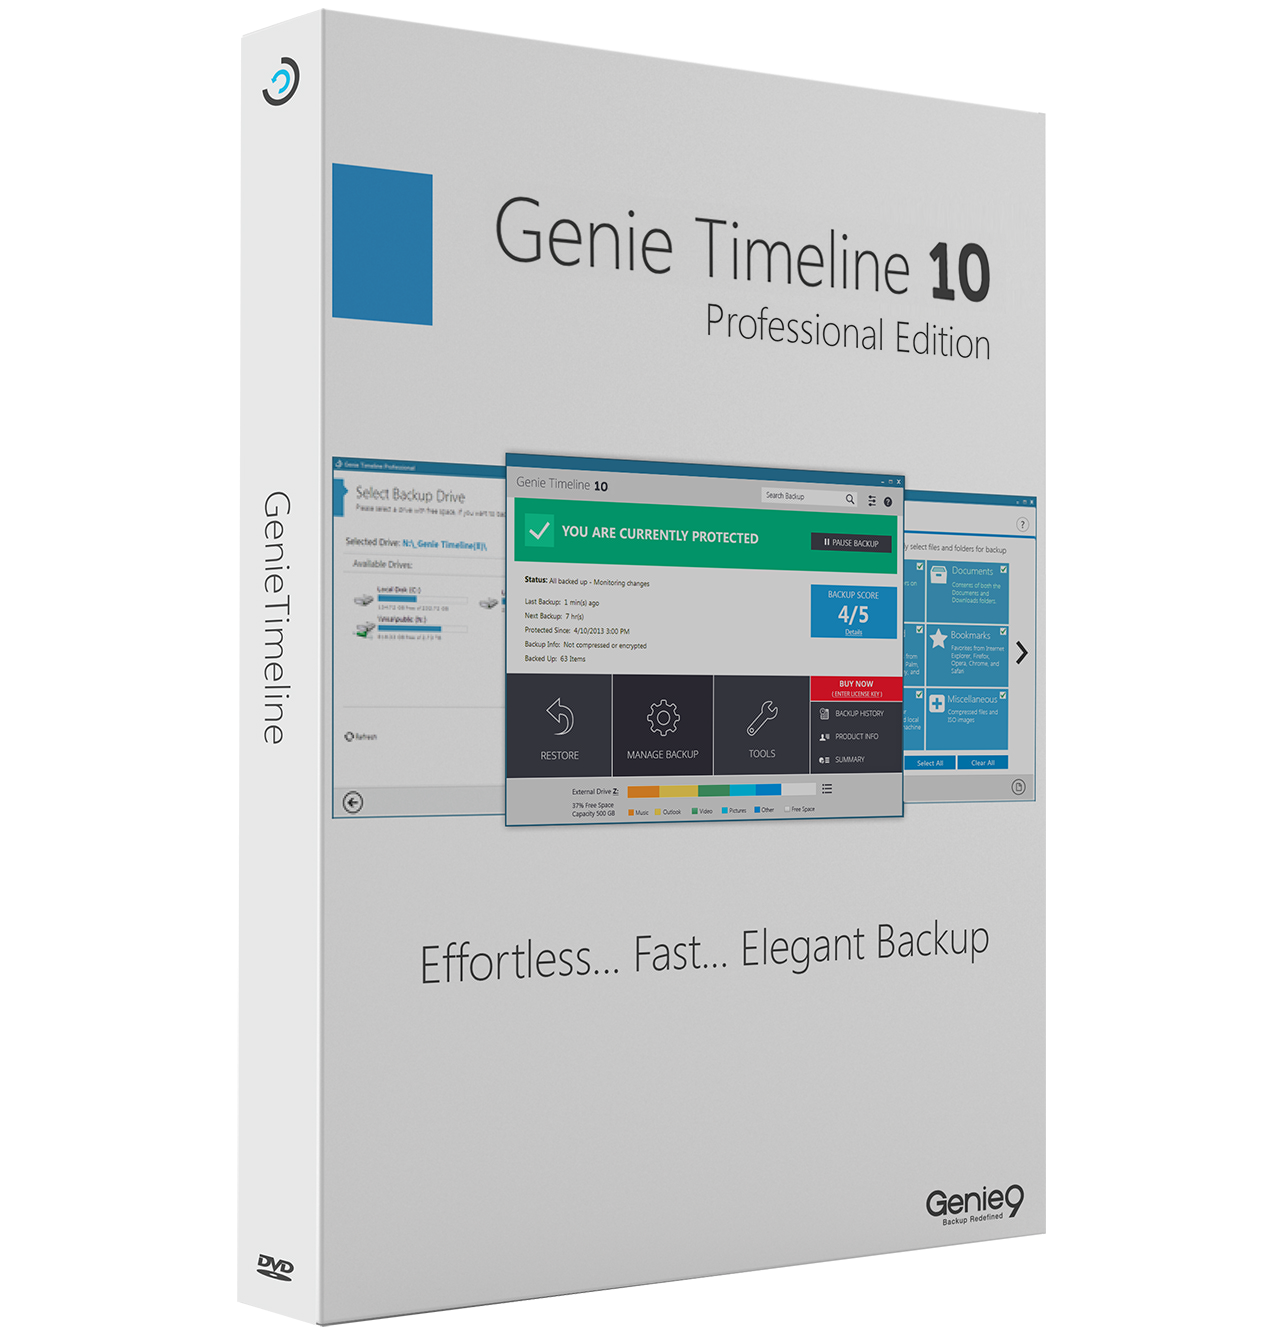 Genie9 - Local Backup Products for business and Home Users